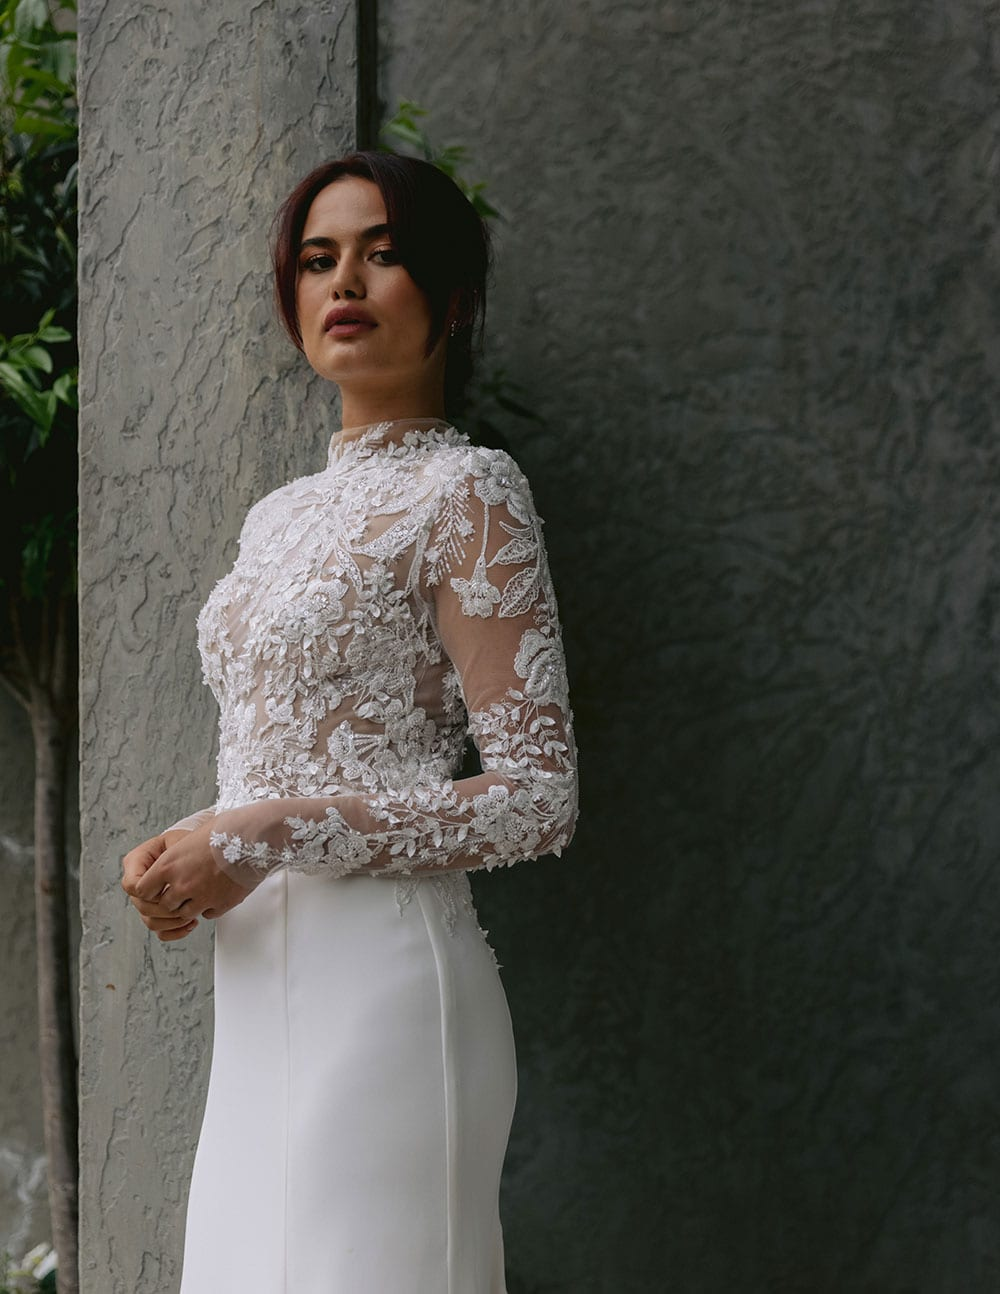 Moana Wedding gown from Vinka Design - Spectacular wedding dress perfect for the modern bride who still wants a classic spark! 3D lace embroidery complemented by a high neckline, fitted sleeves, and stunning low back into a flare train. Model wearing gown showing 3D lace detail at front.